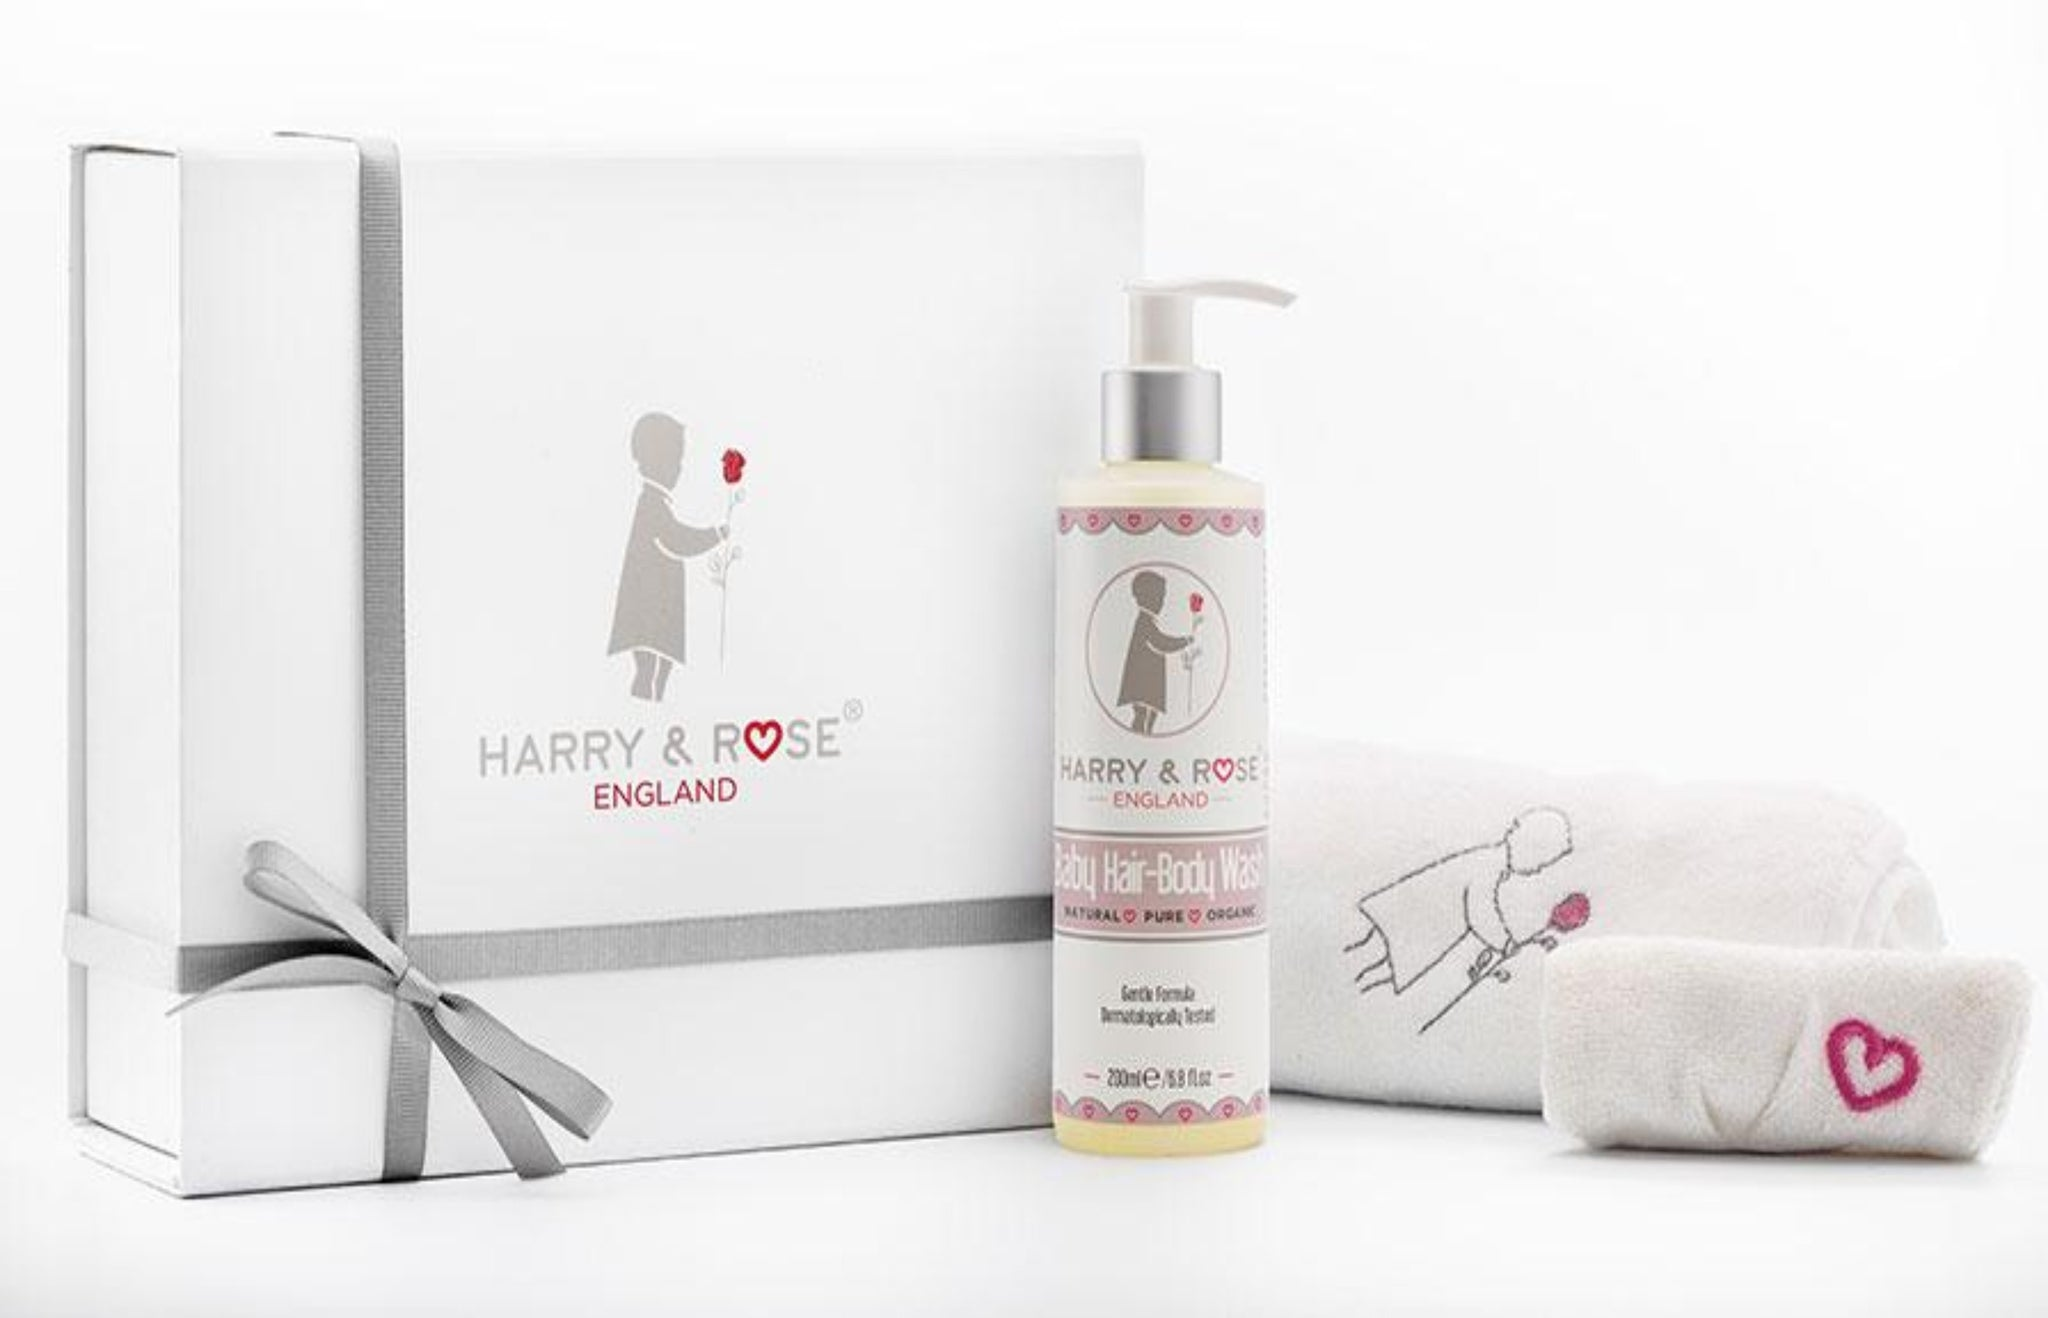 Harry & Rose - Baby Bath - Organic baby - Baby products - baby skincare - baby products UK - newborn bath